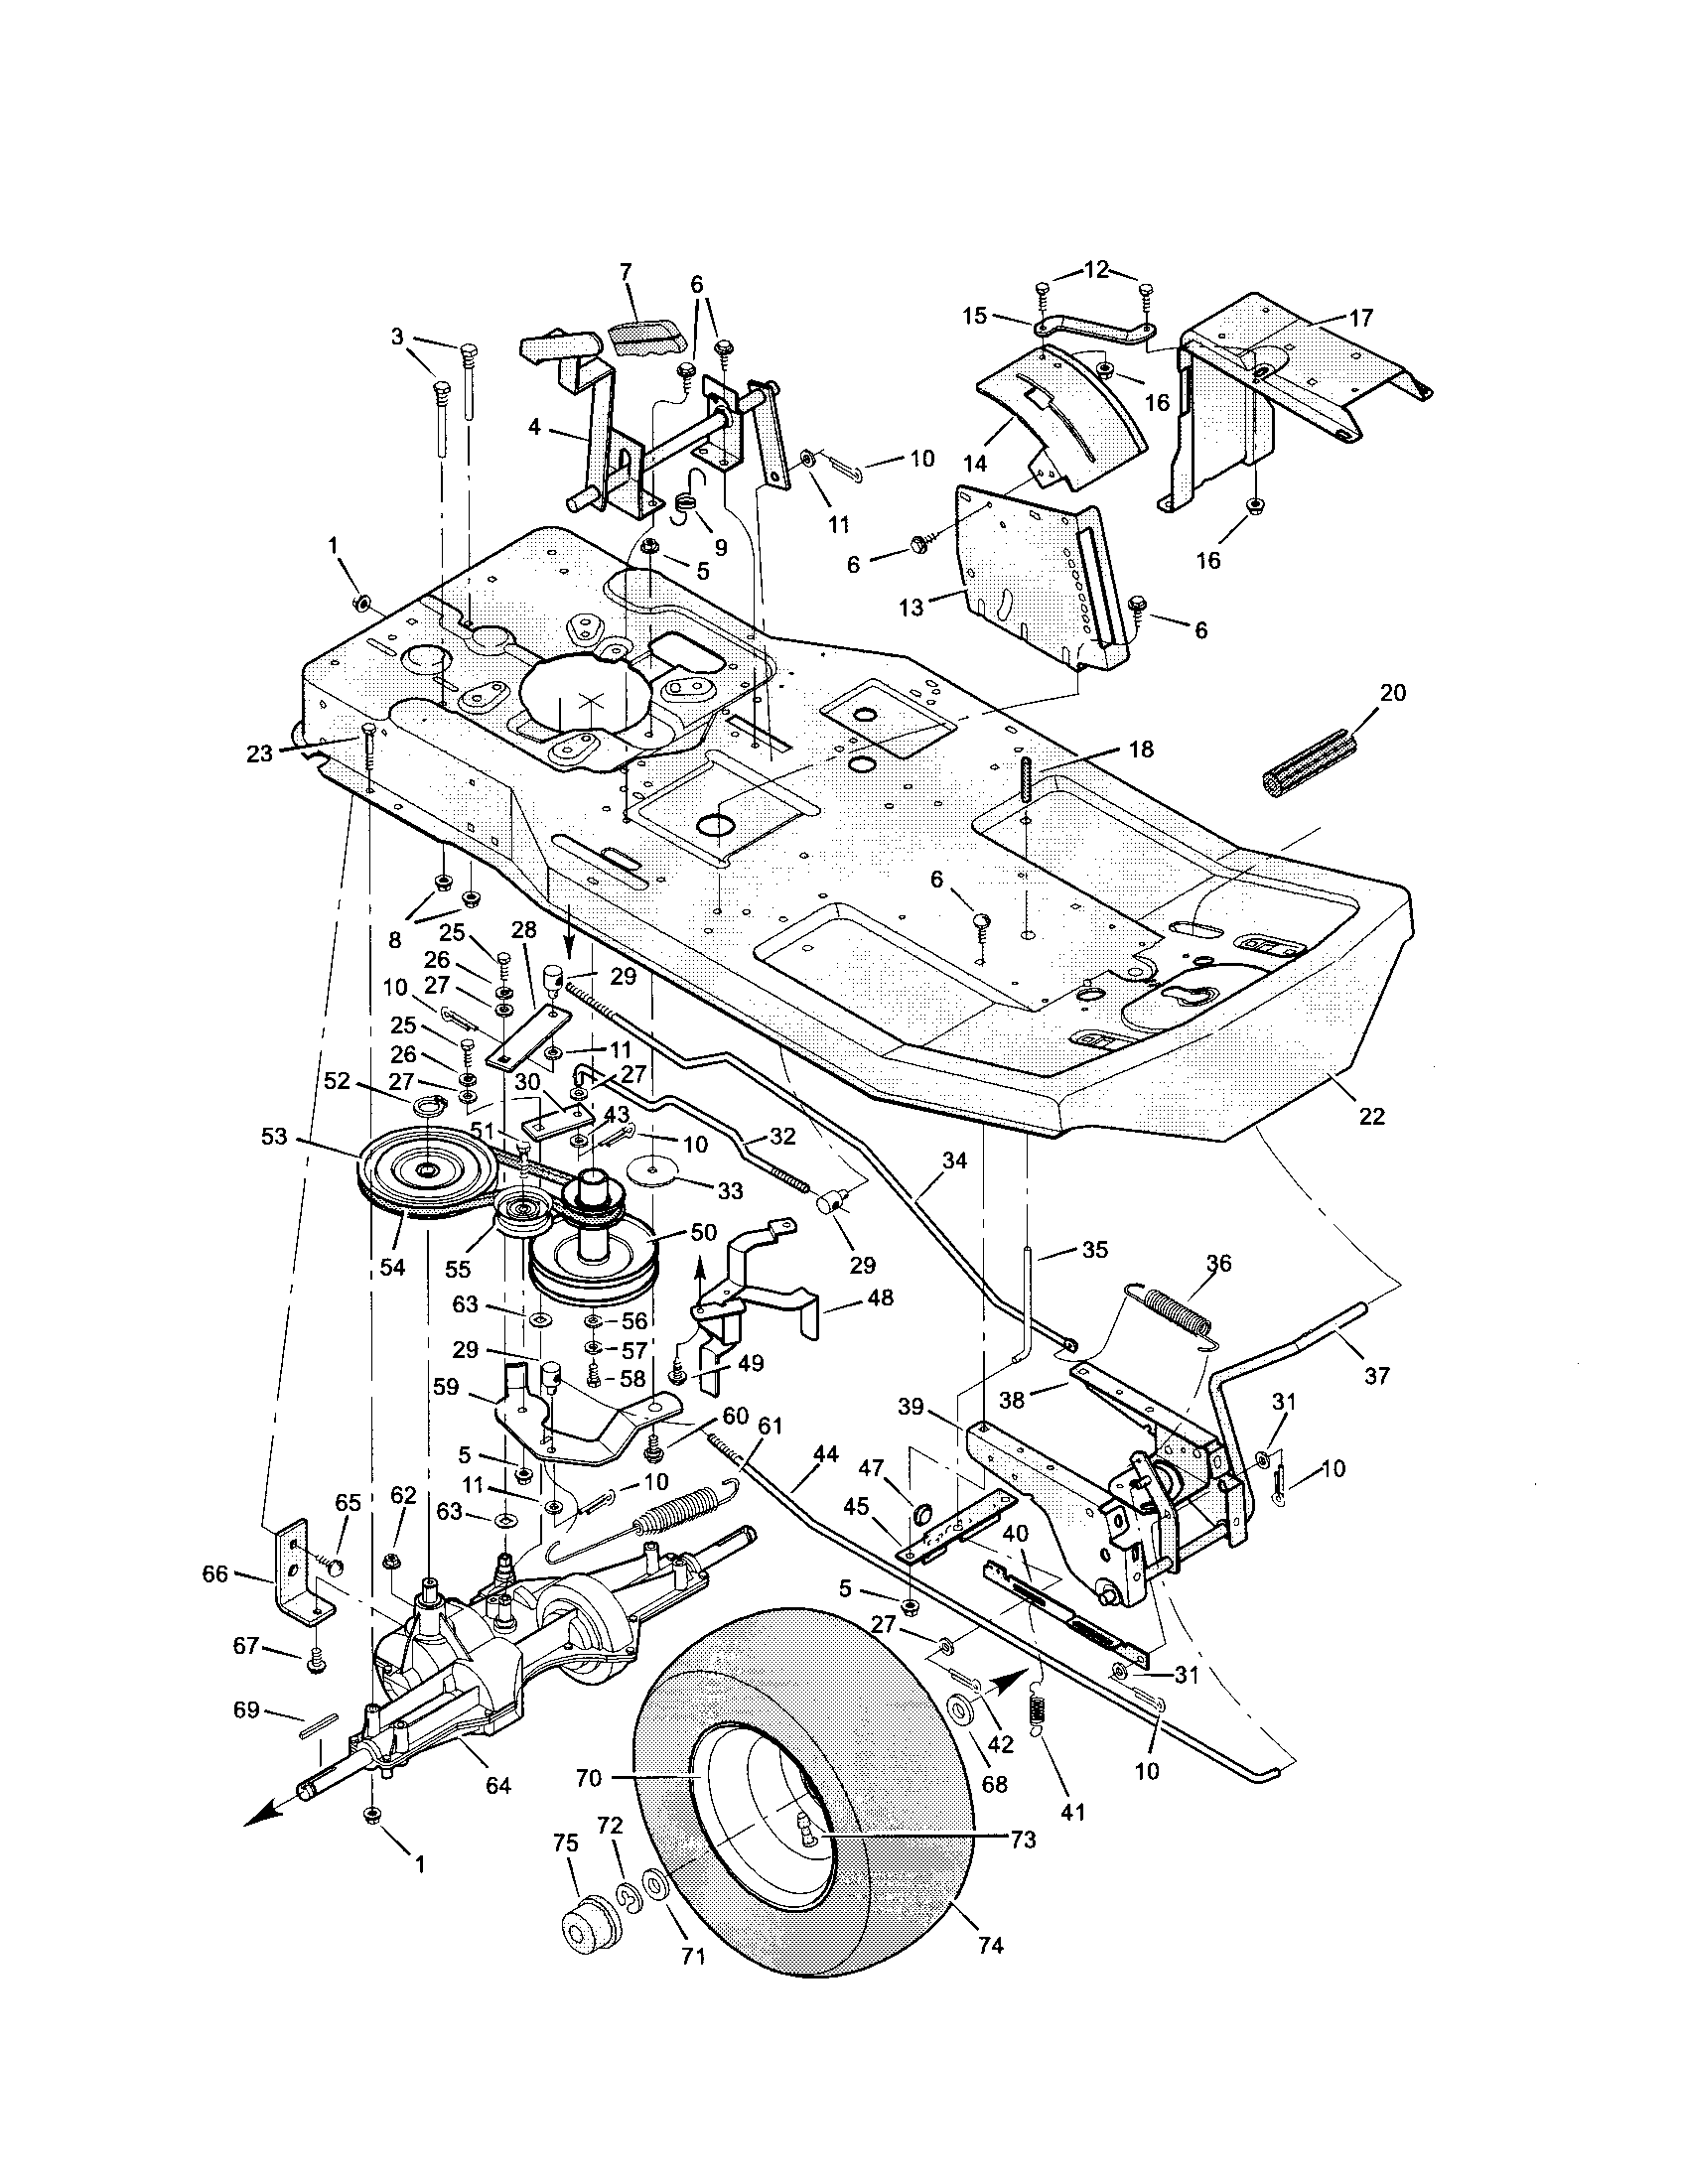 MOTION DRIVE Diagram & Parts List for Model 536270212